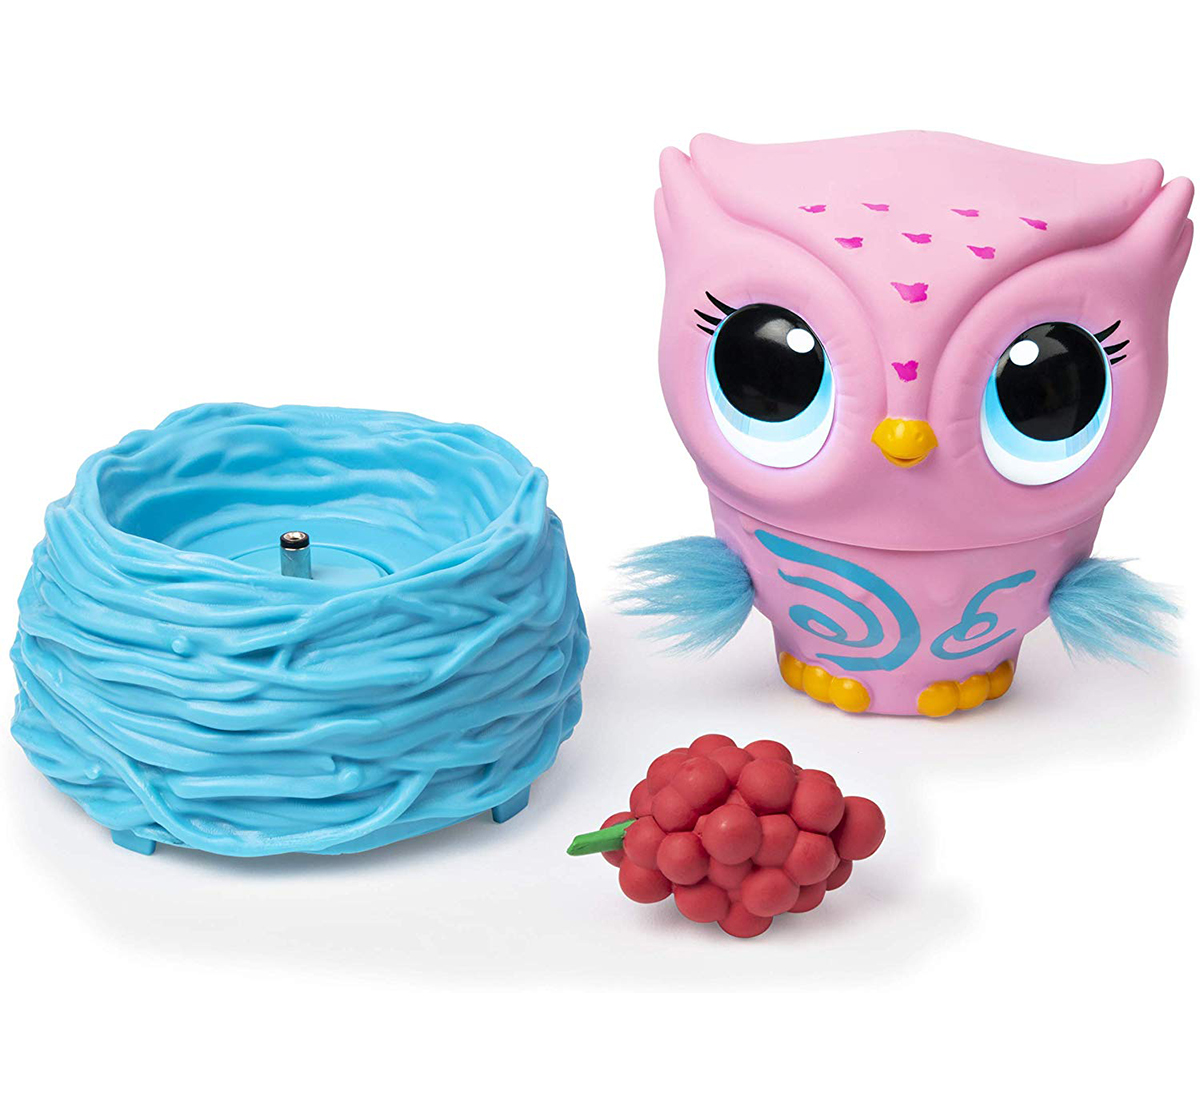 Owleez | Owleez, Flying Baby Owl Interactive Toy with Lights and SoundsCollectible Dolls for Kids age 6Y+ (Pink)